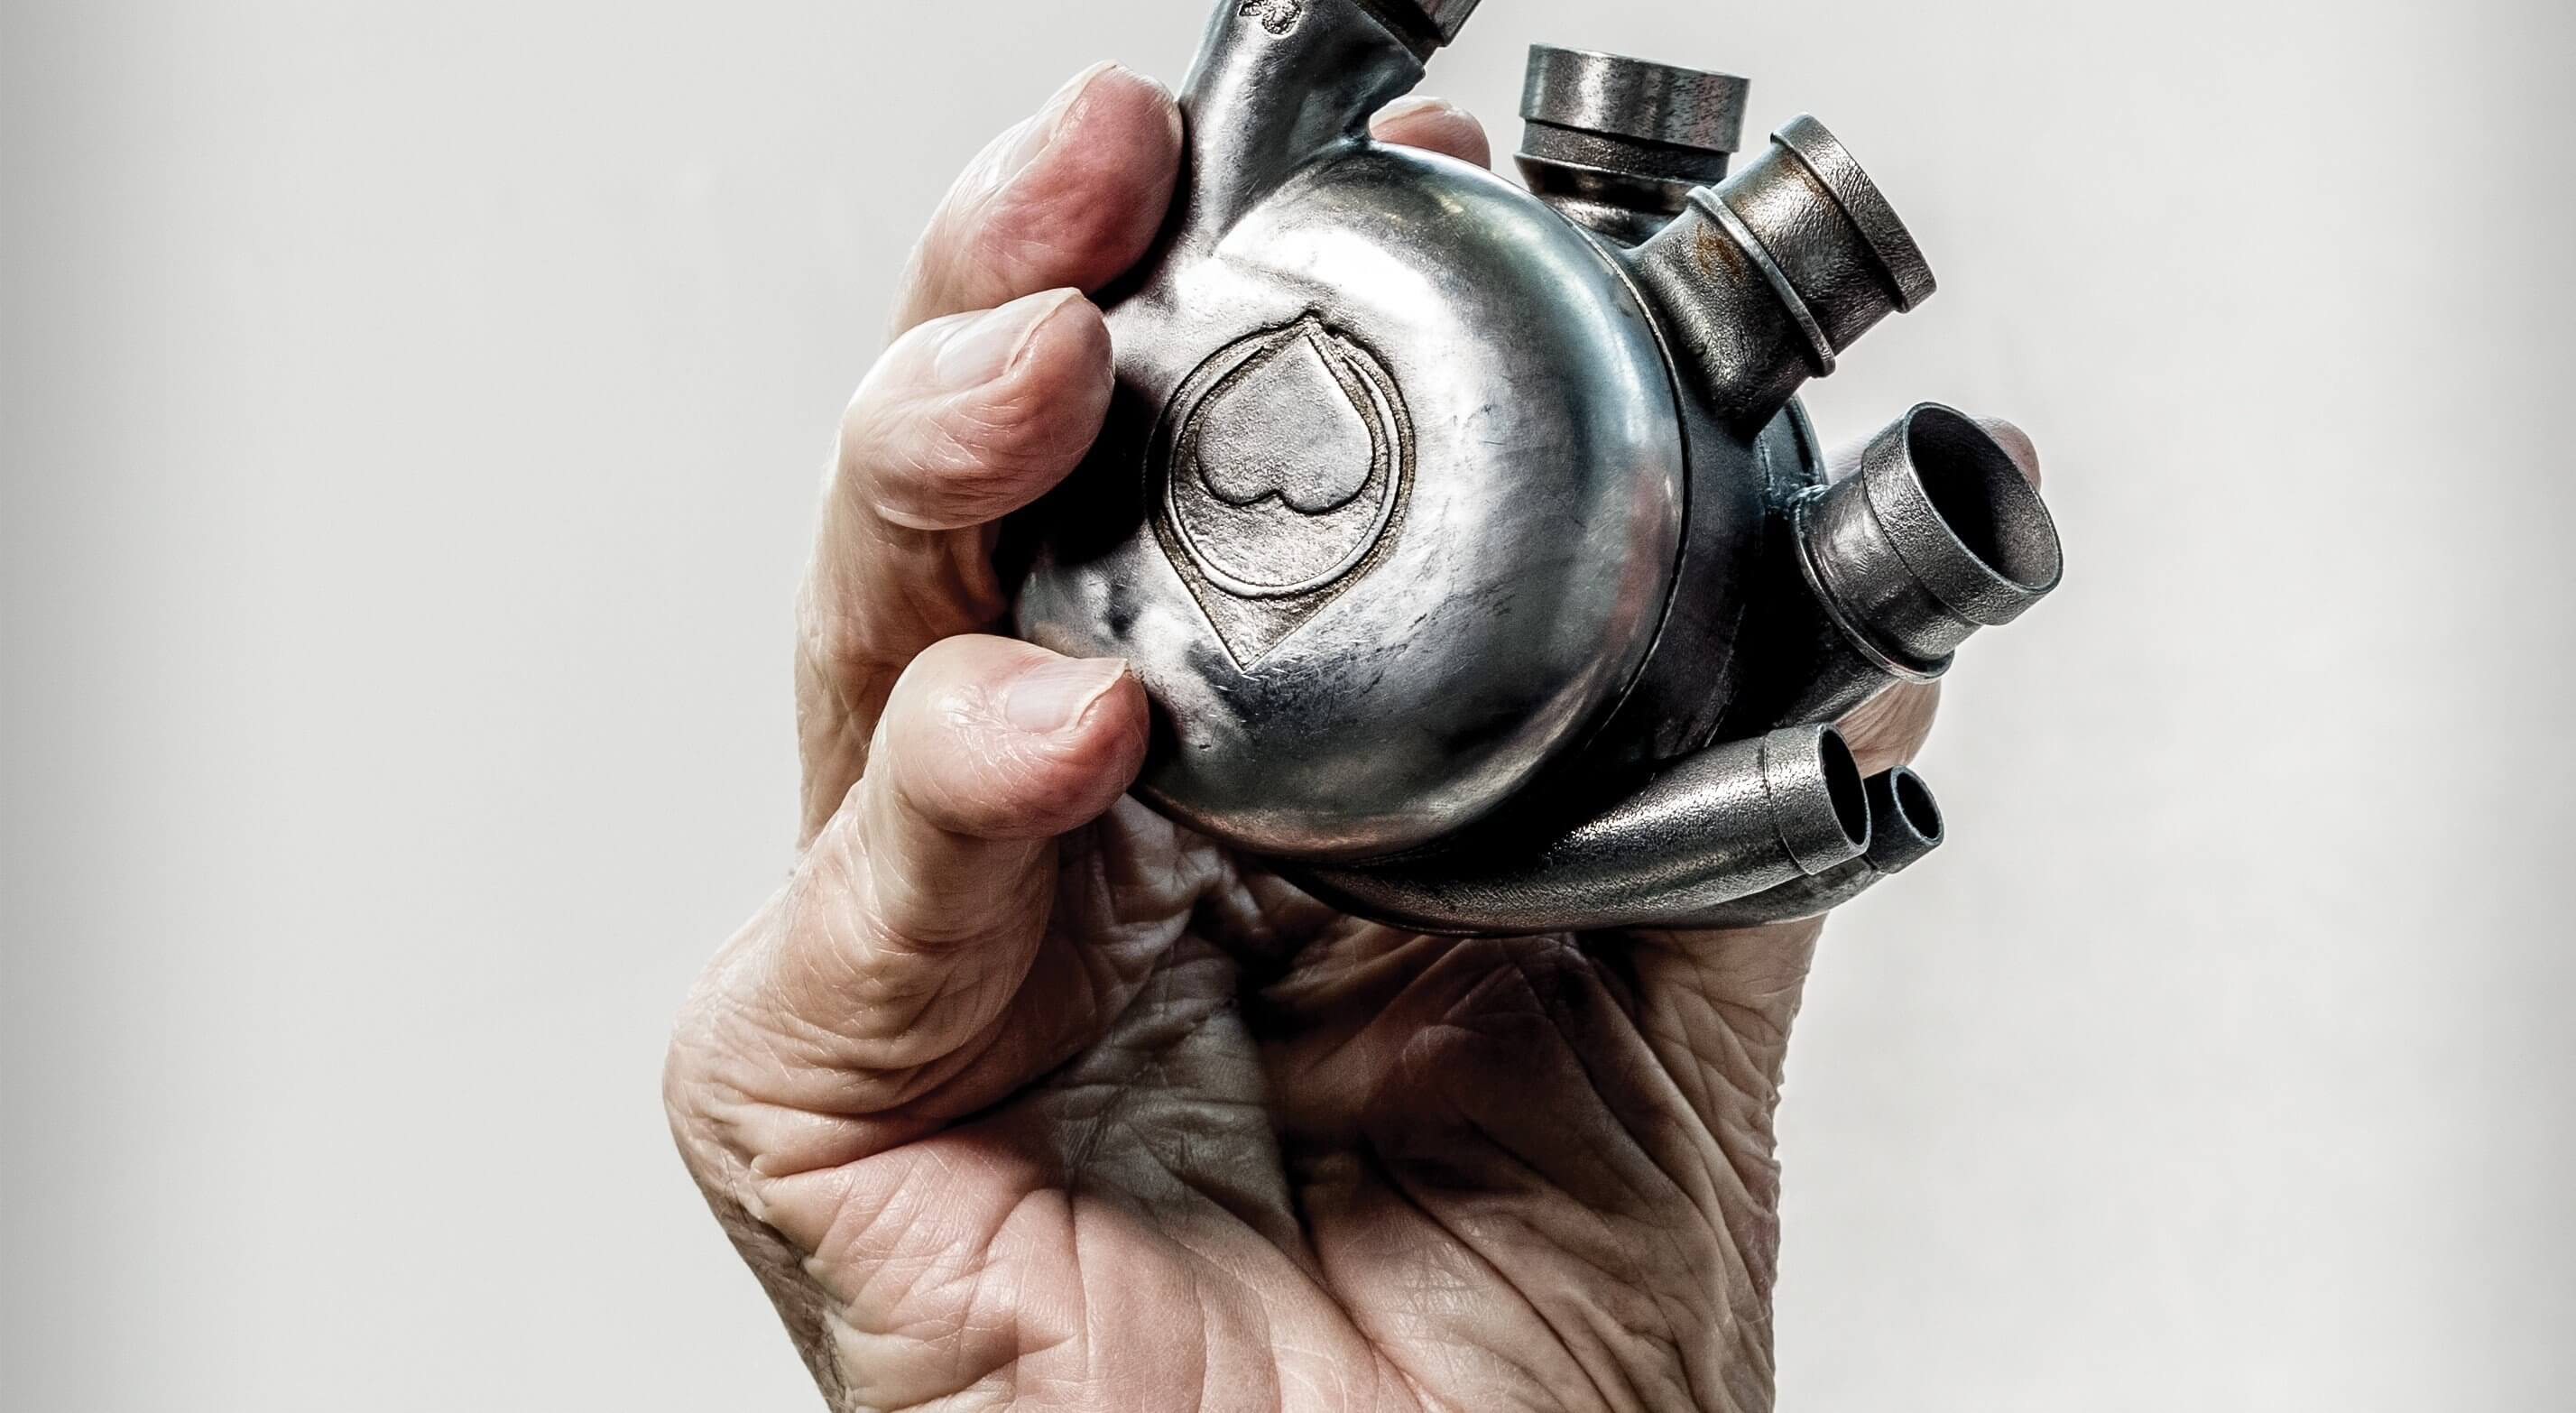 Cooley holds a Bivacor total artificial heart. Research on the device is ongoing at the Texas Heart Institute.